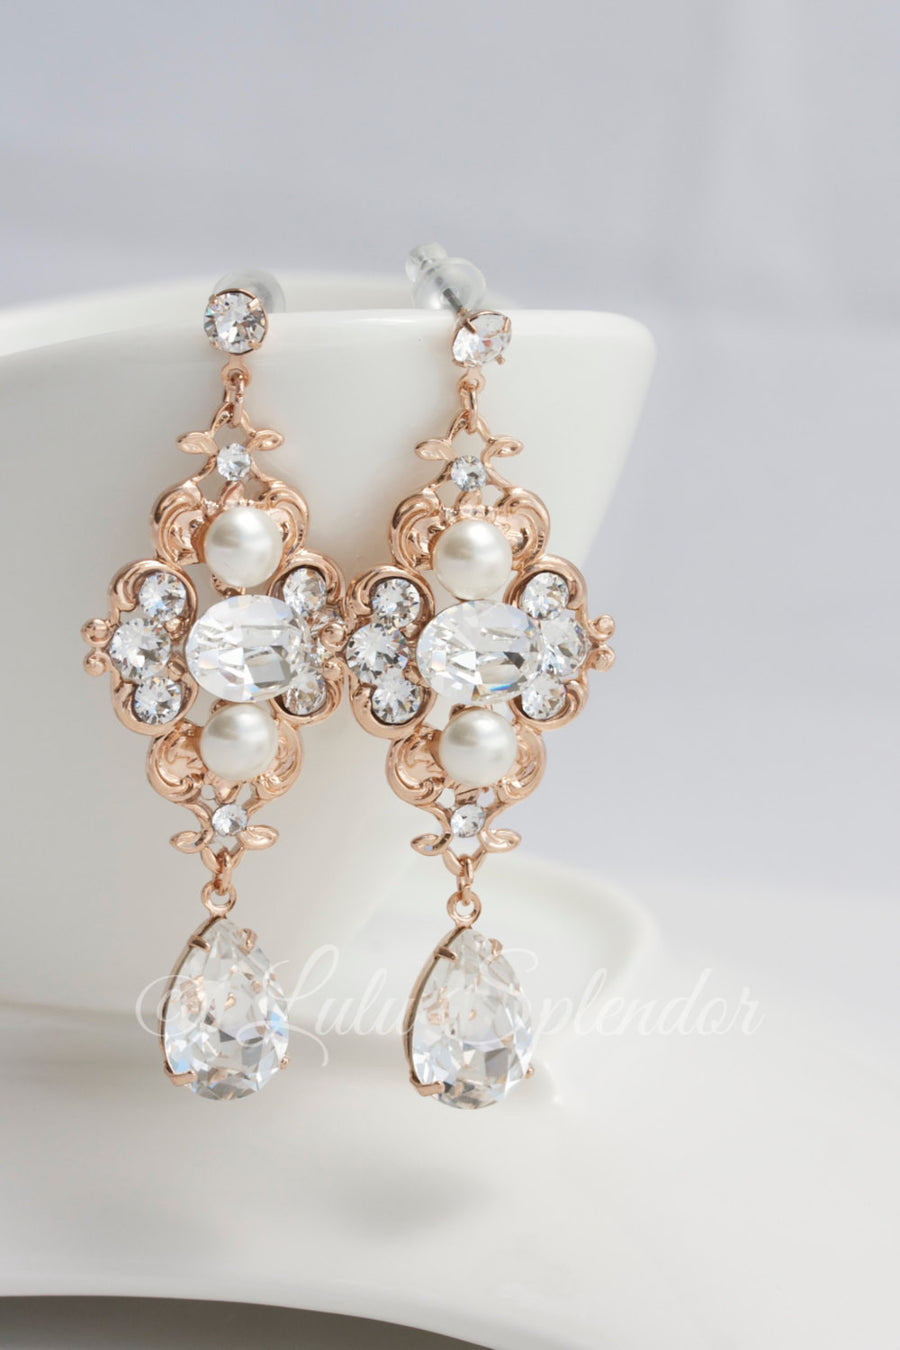 LEILA DELUXE BRIDAL EARRINGS - Lulu Splendor